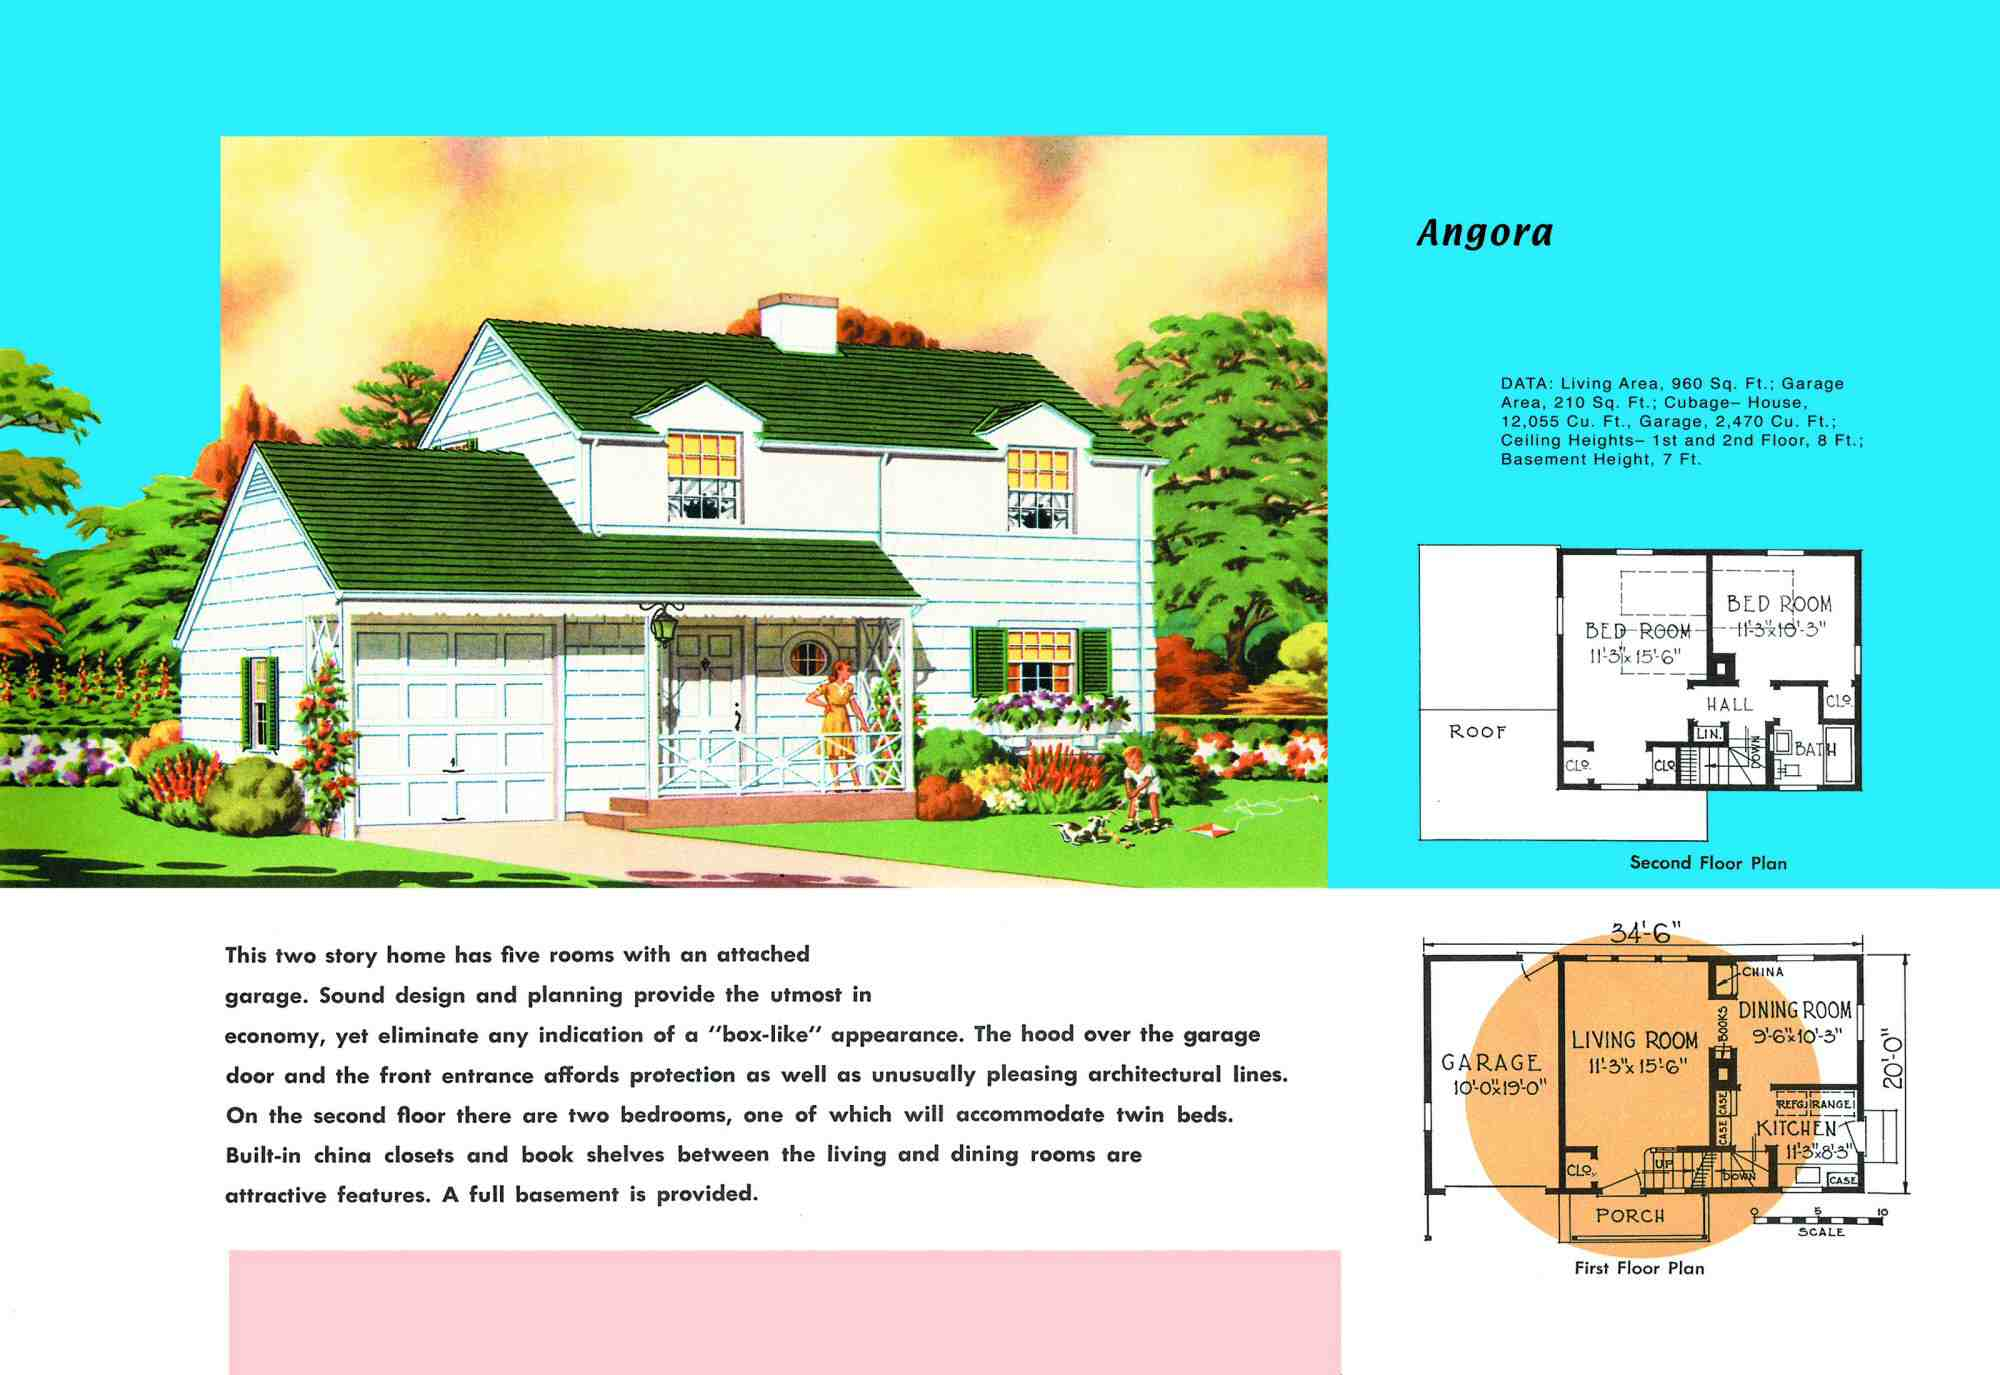 Neocolonial Floor Plans on garrison dam construction, victorian homes, georgian homes, log homes, contemporary homes, new england saltbox homes, tudor homes, ranch homes, garrison home design, architectural styles of homes, early american homes, country french homes,